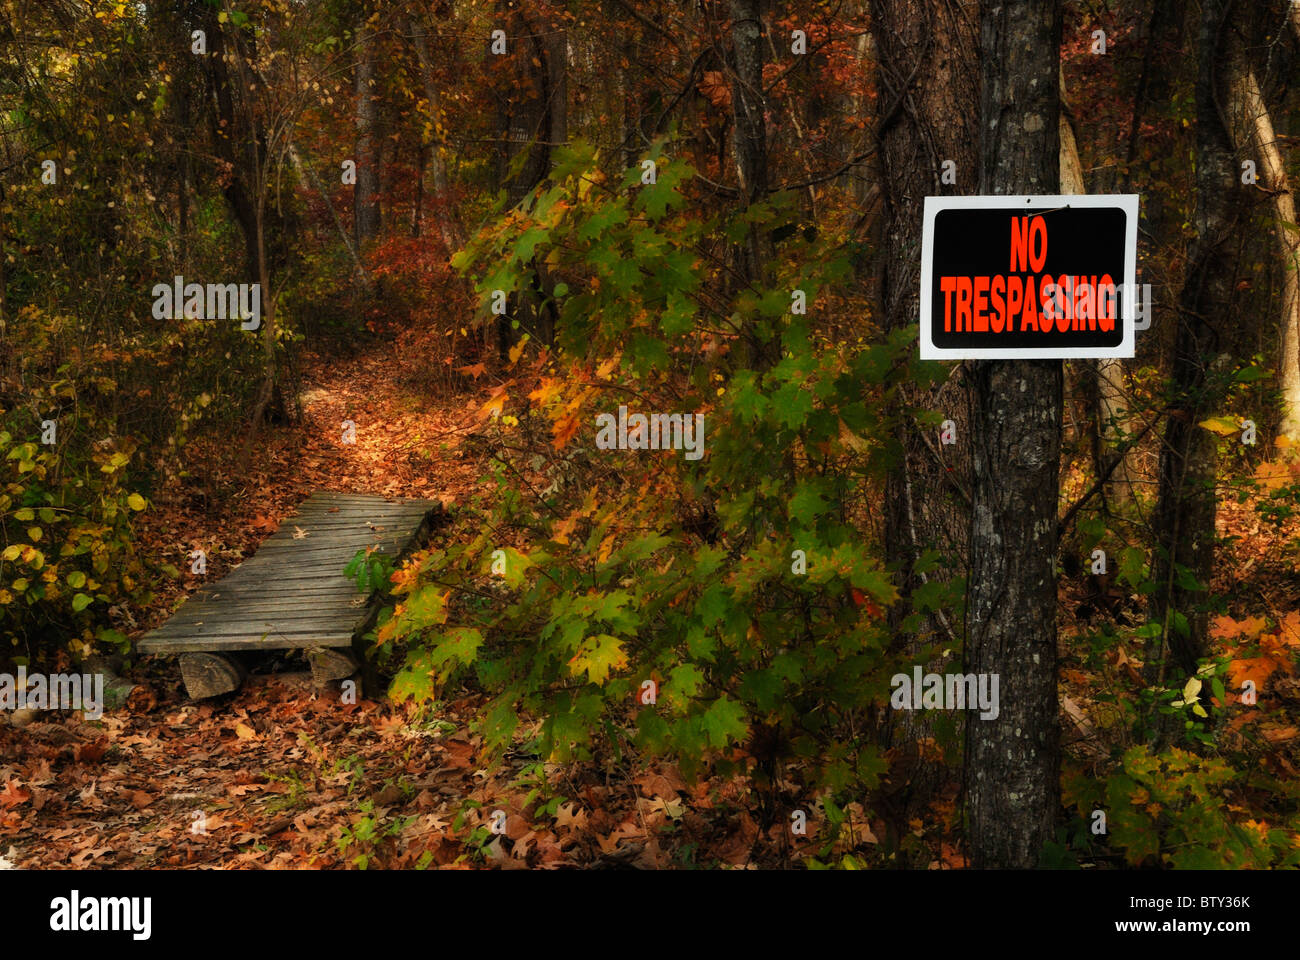 No Trespassing sign on a hiking trail - Stock Image